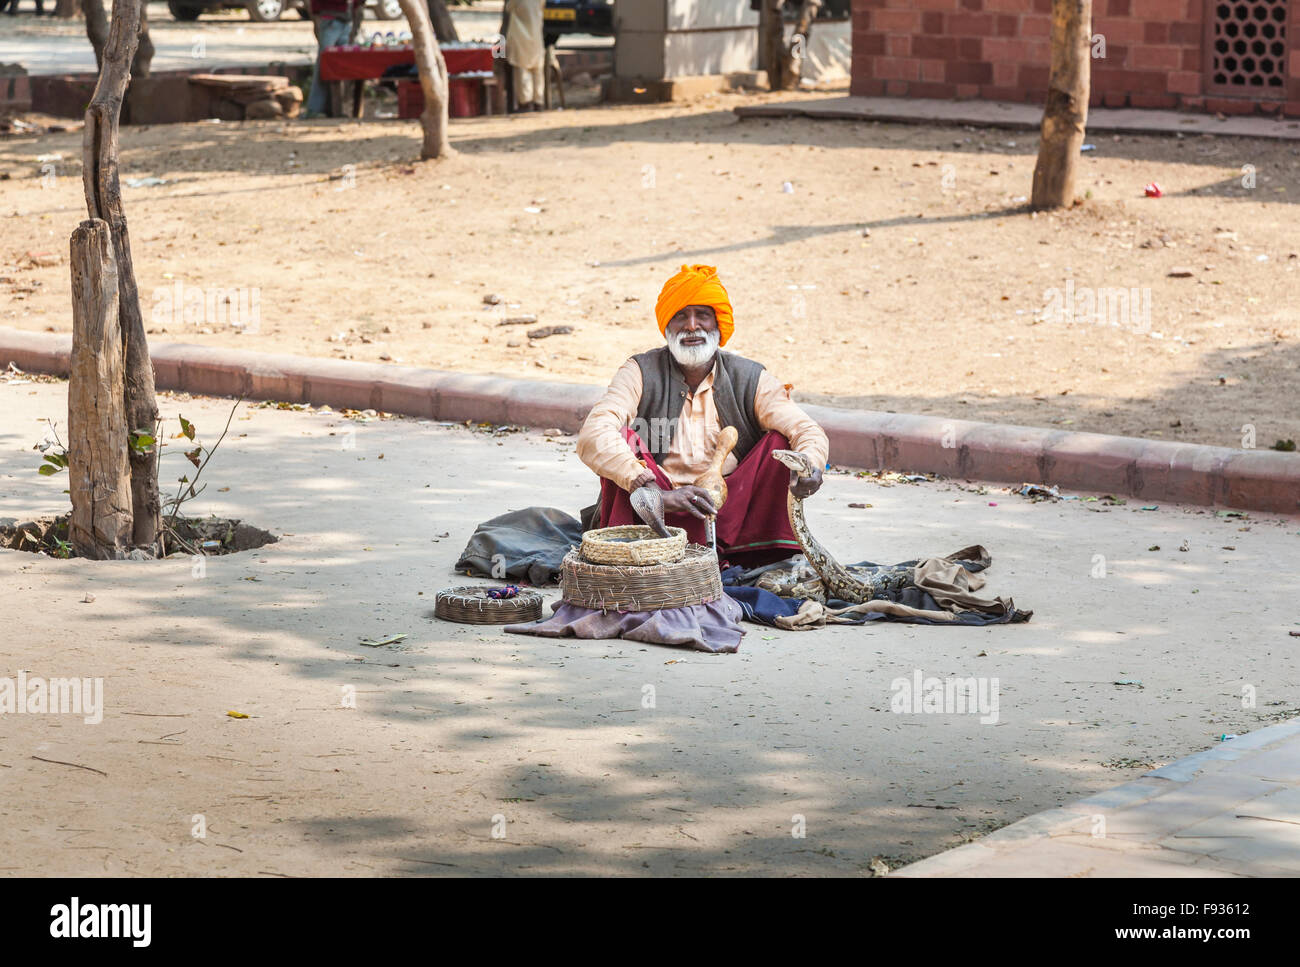 Roadside snake charmer with cobra and python, Fatehpur Sikri, a city in the Agra District of Uttar Pradesh, India Stock Photo